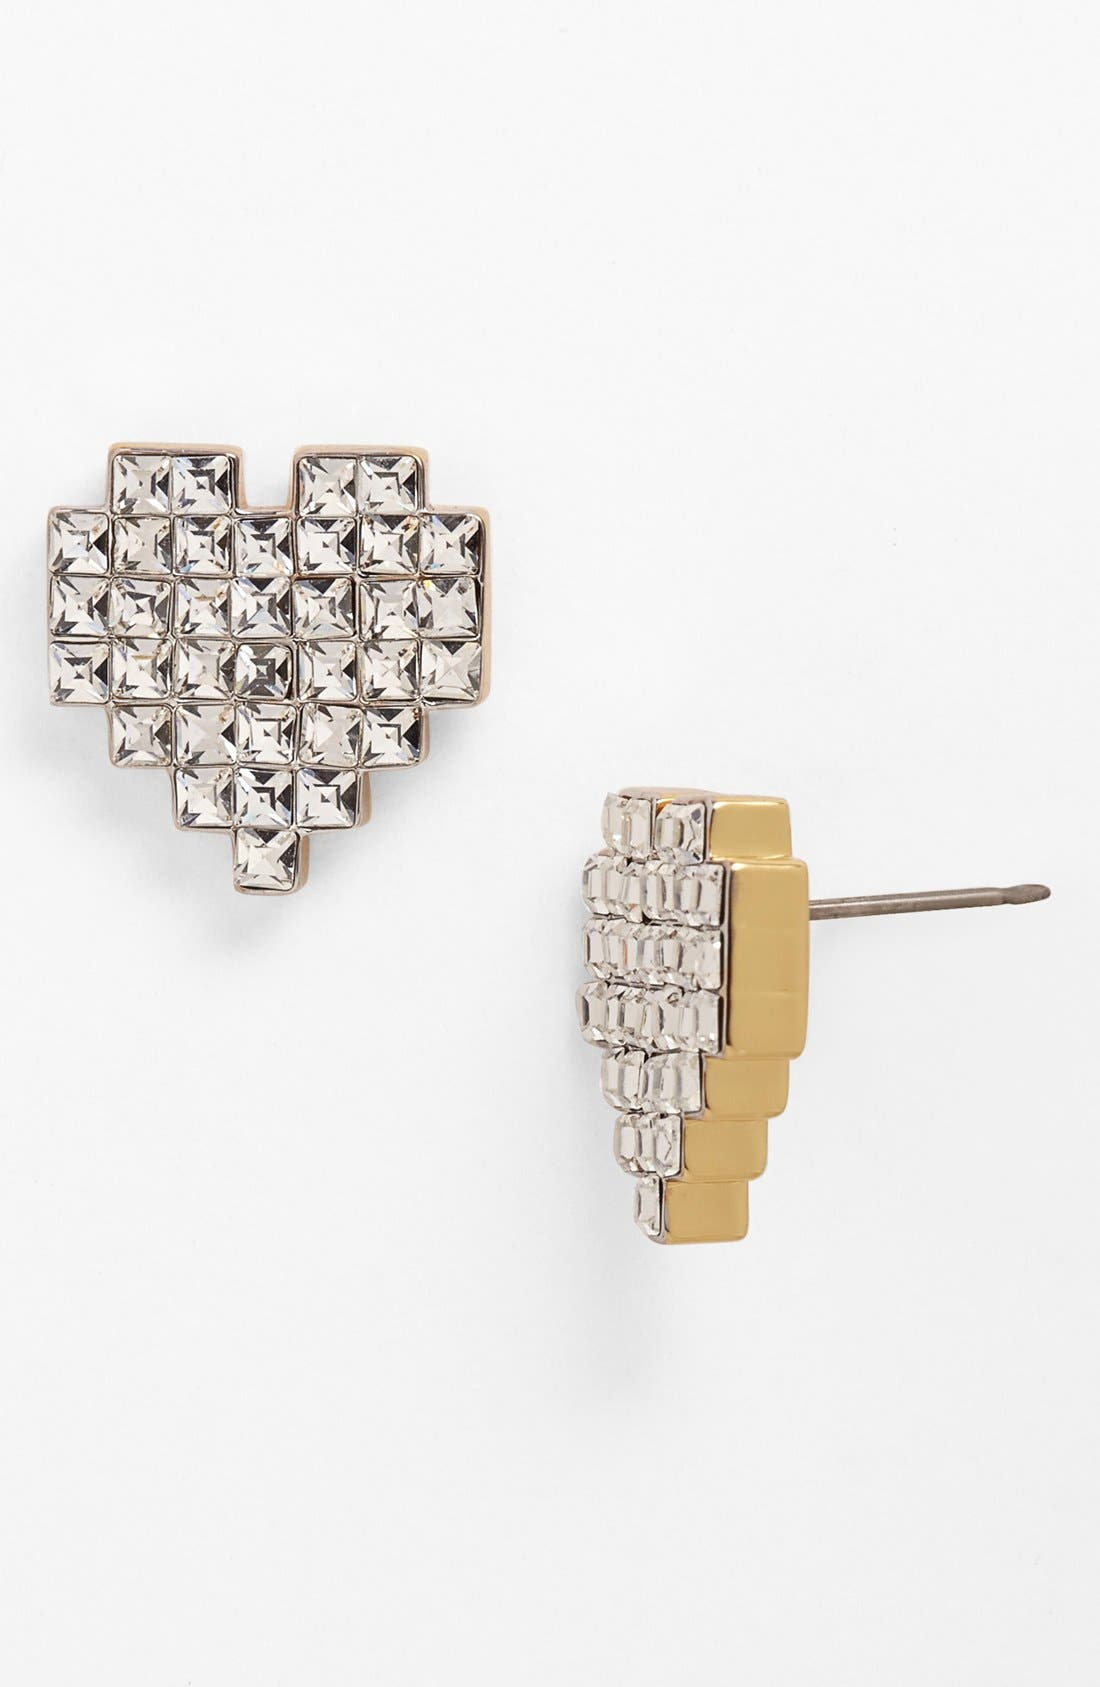 Alternate Image 1 Selected - Juicy Couture 'Heart of Gold' Pixel Heart Stud Earrings